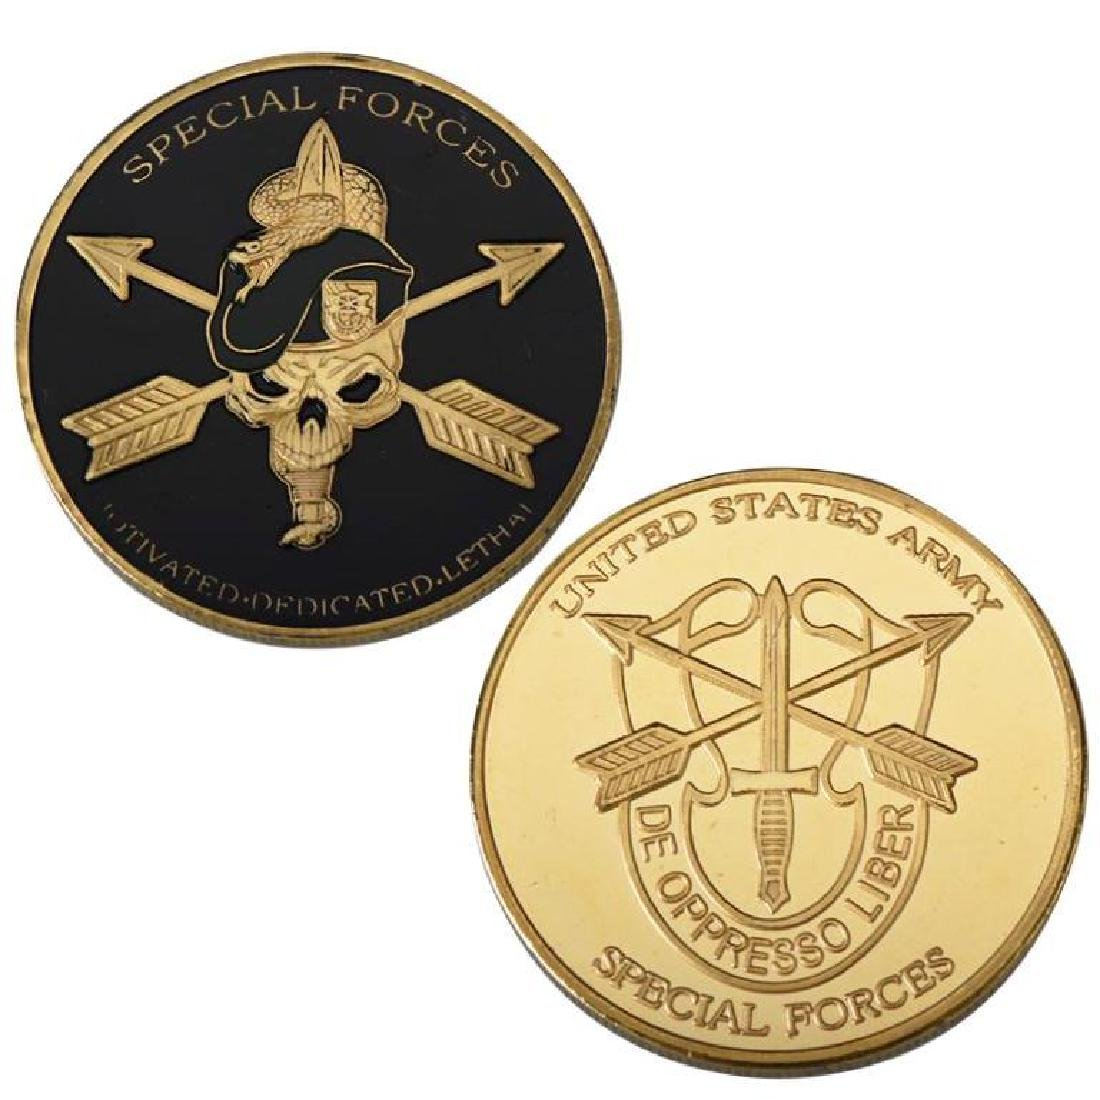 USA Army Special Forces Gold Clad Challenge Coin